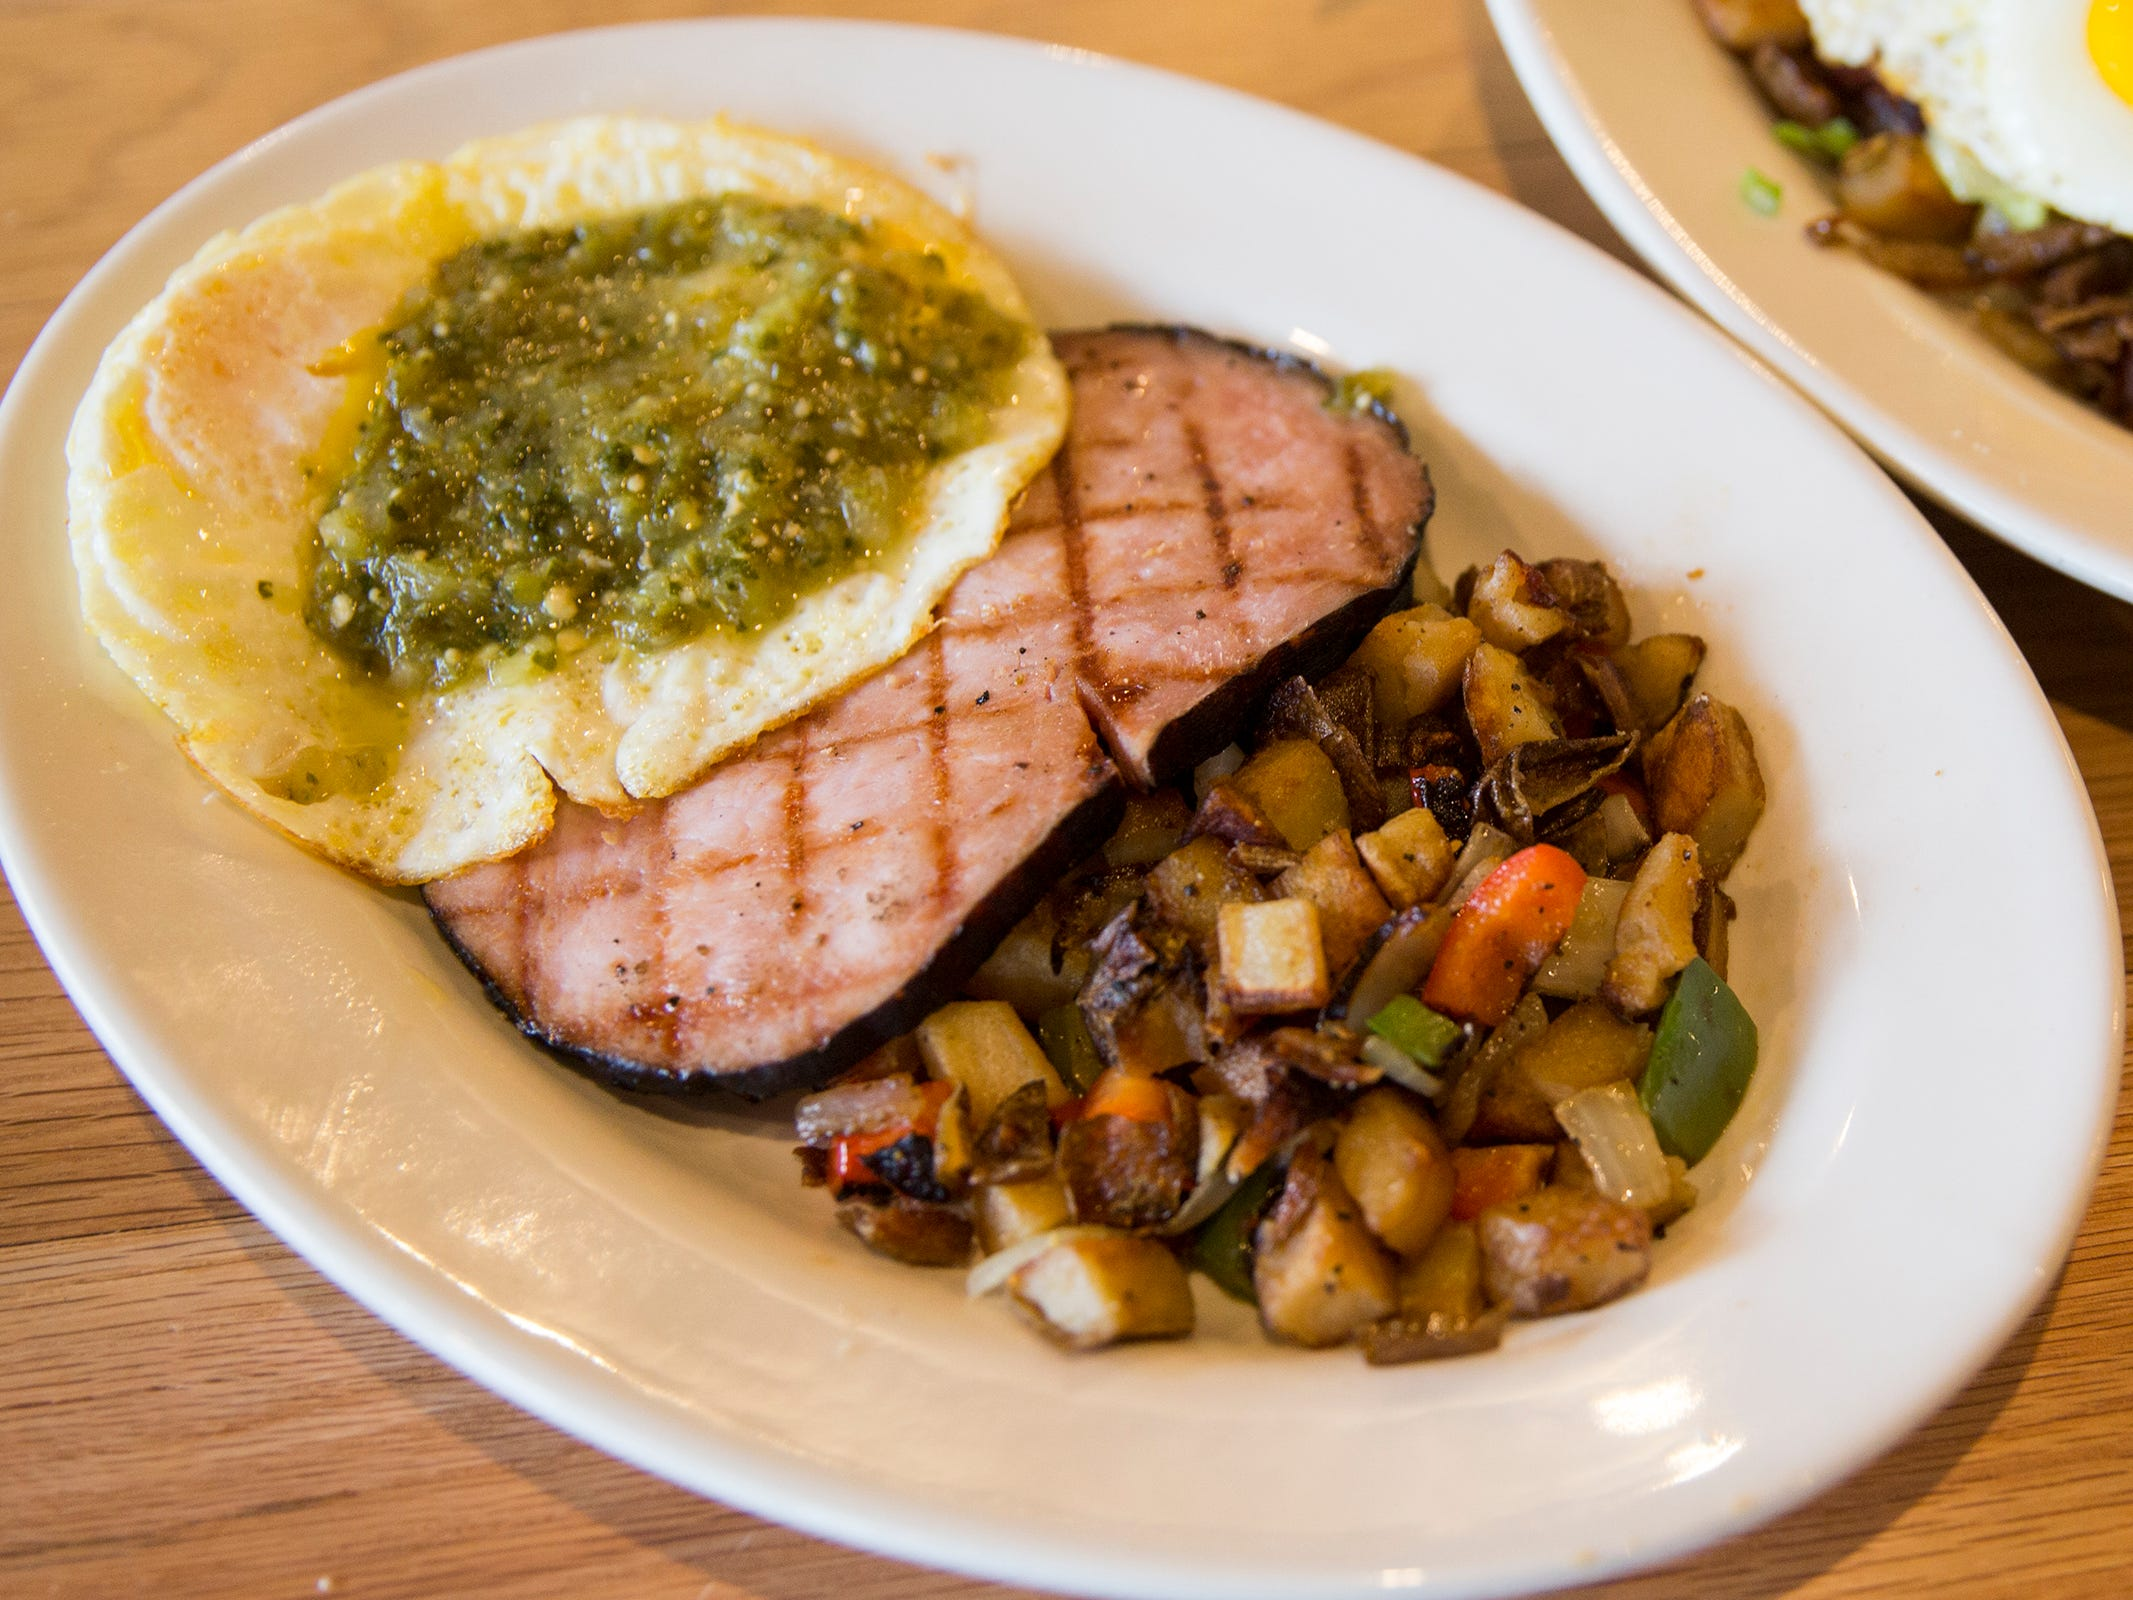 Green eggs and ham which has eggs with salsa verde, ham steak and hash browns at Black Sheep Café & Catering in Salem on Tuesday, Dec. 8, 2019.